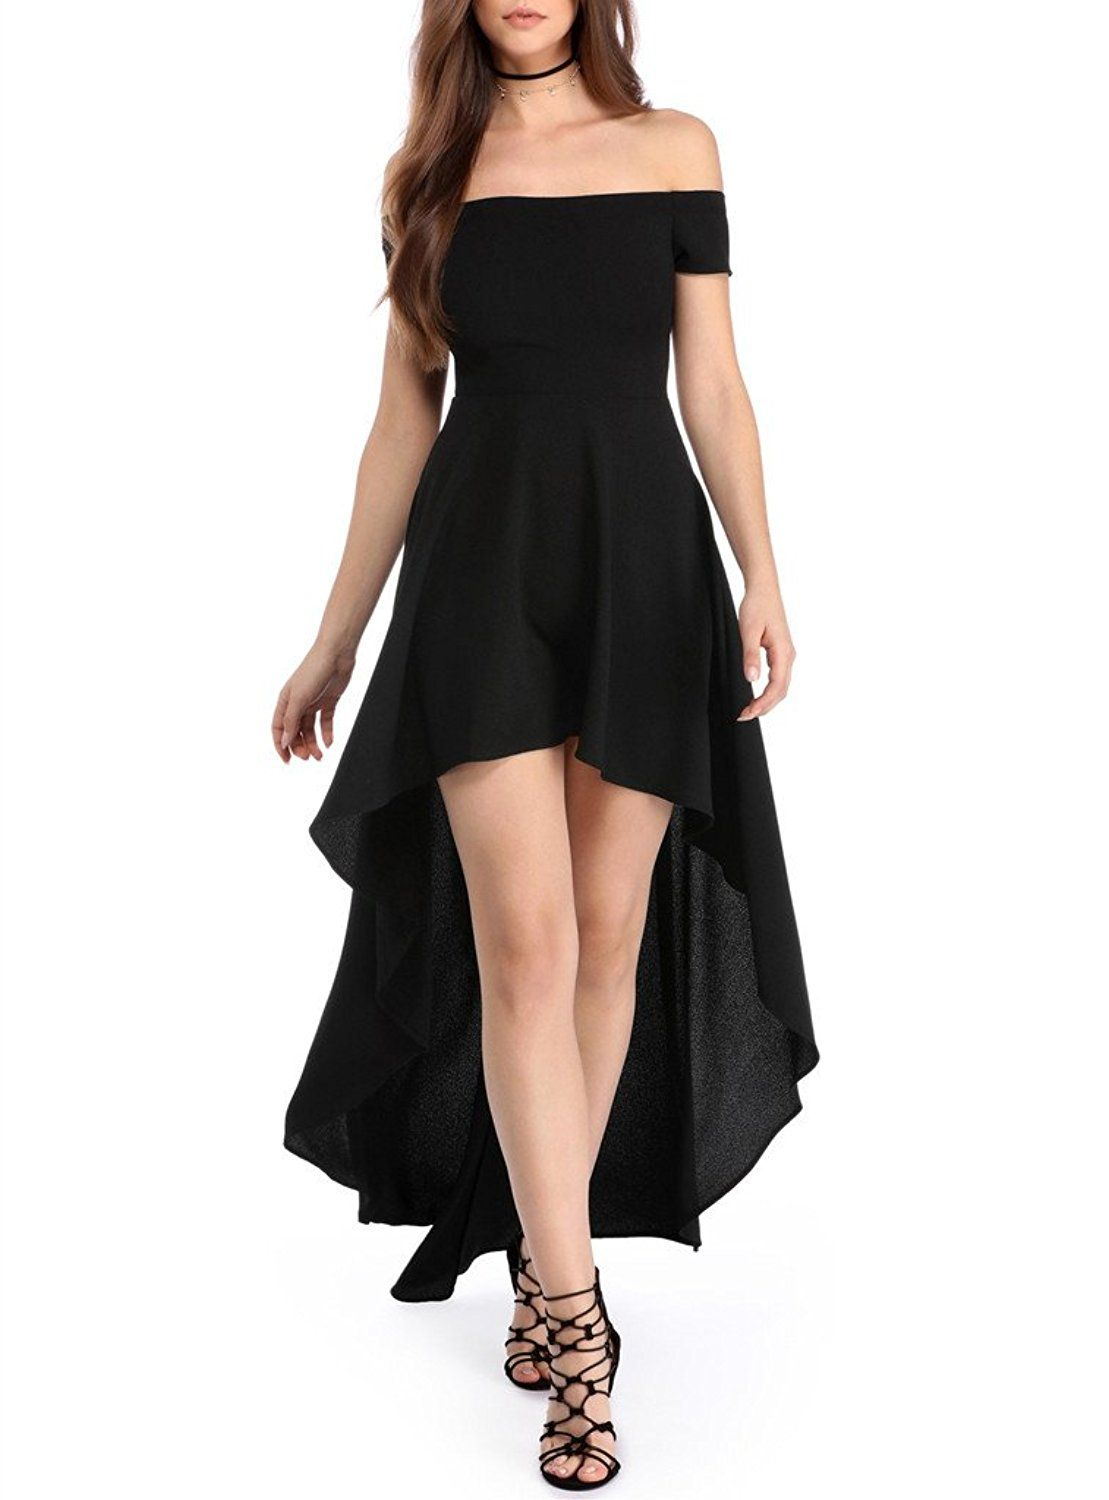 ac3c4388c96 Sidefeel Women Off Shoulder High Low Maxi Party Dresses at Amazon Women s  Clothing store